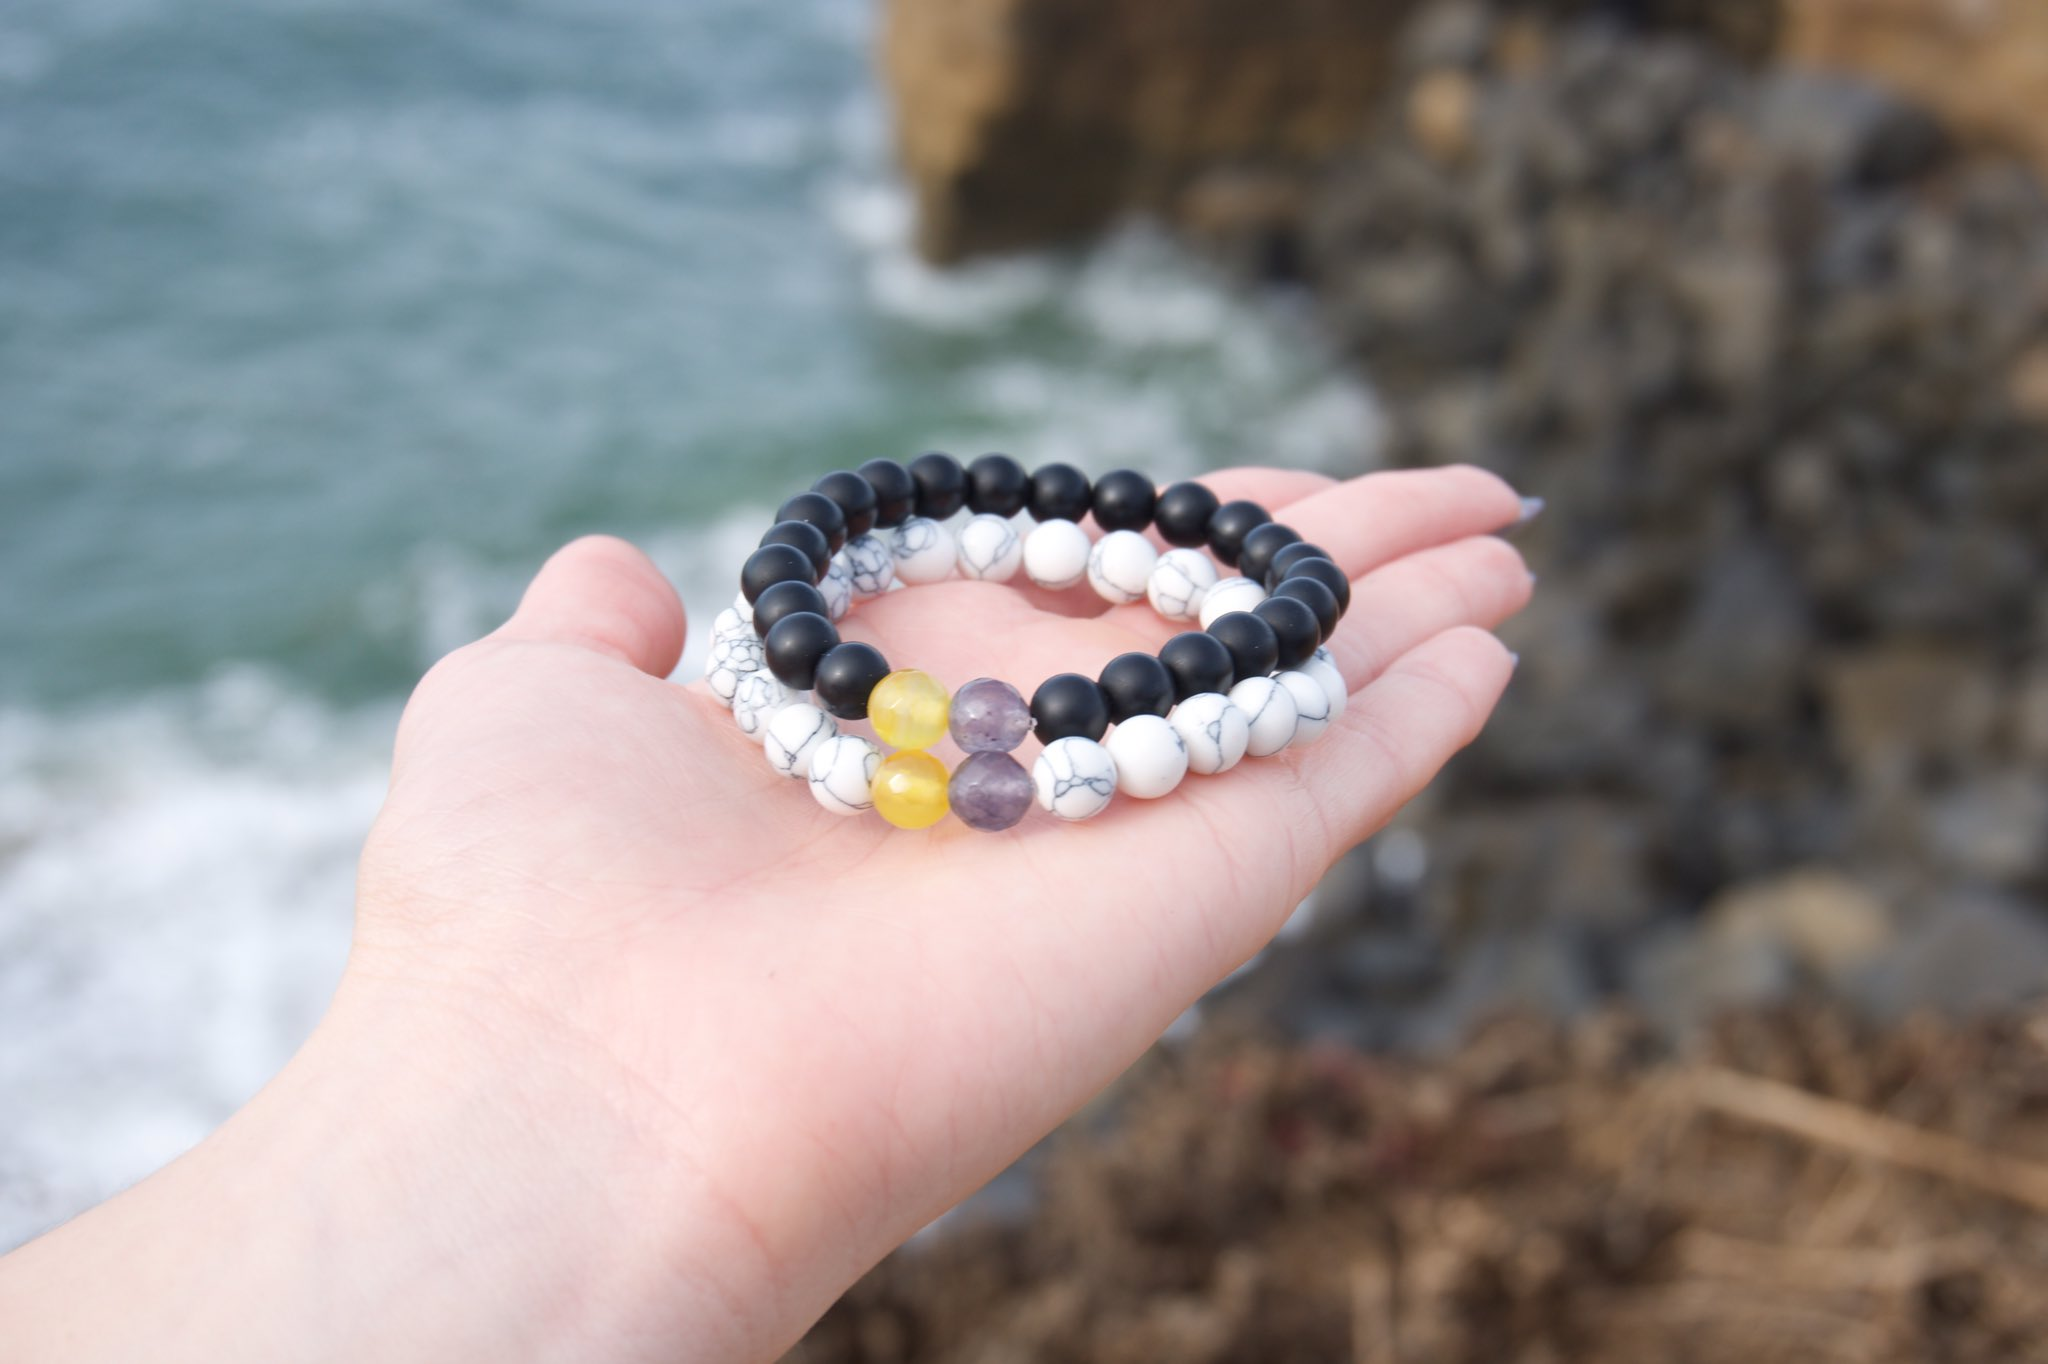 RT @BEFlTMOTlVATION: Promise Bracelets are the cutest thing ever! ❤️���� https://t.co/TDEVMF9sqM https://t.co/fOxYVqbpXc